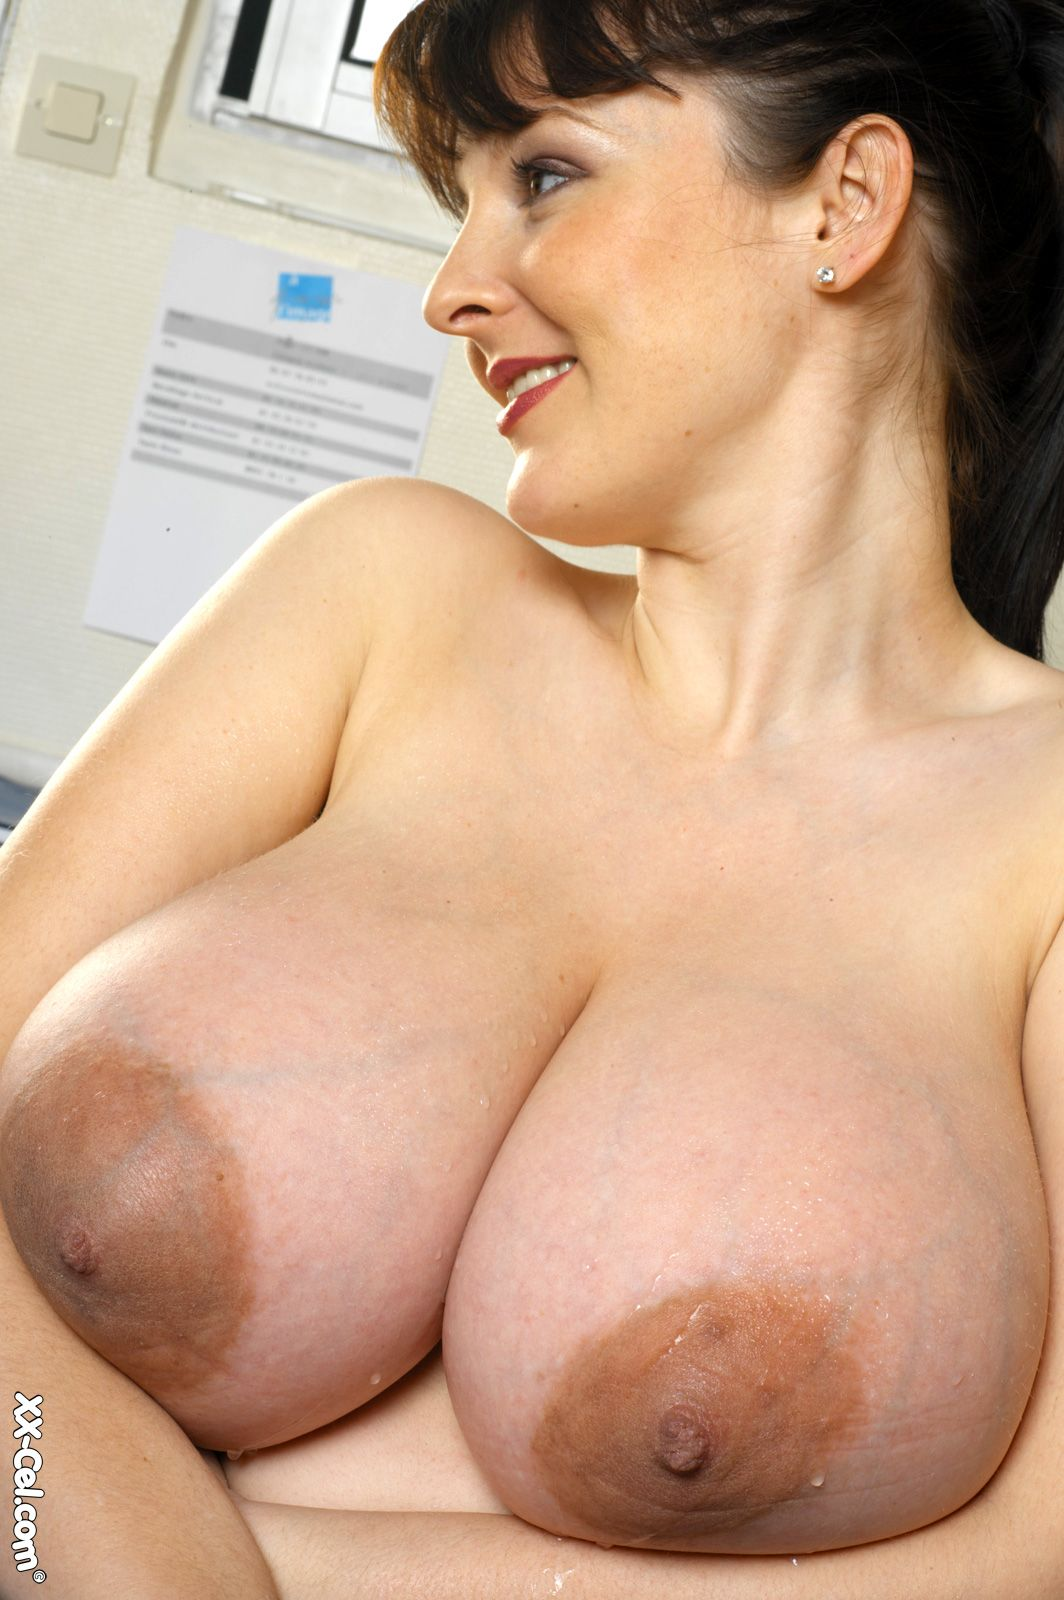 Very Hot big tits girl